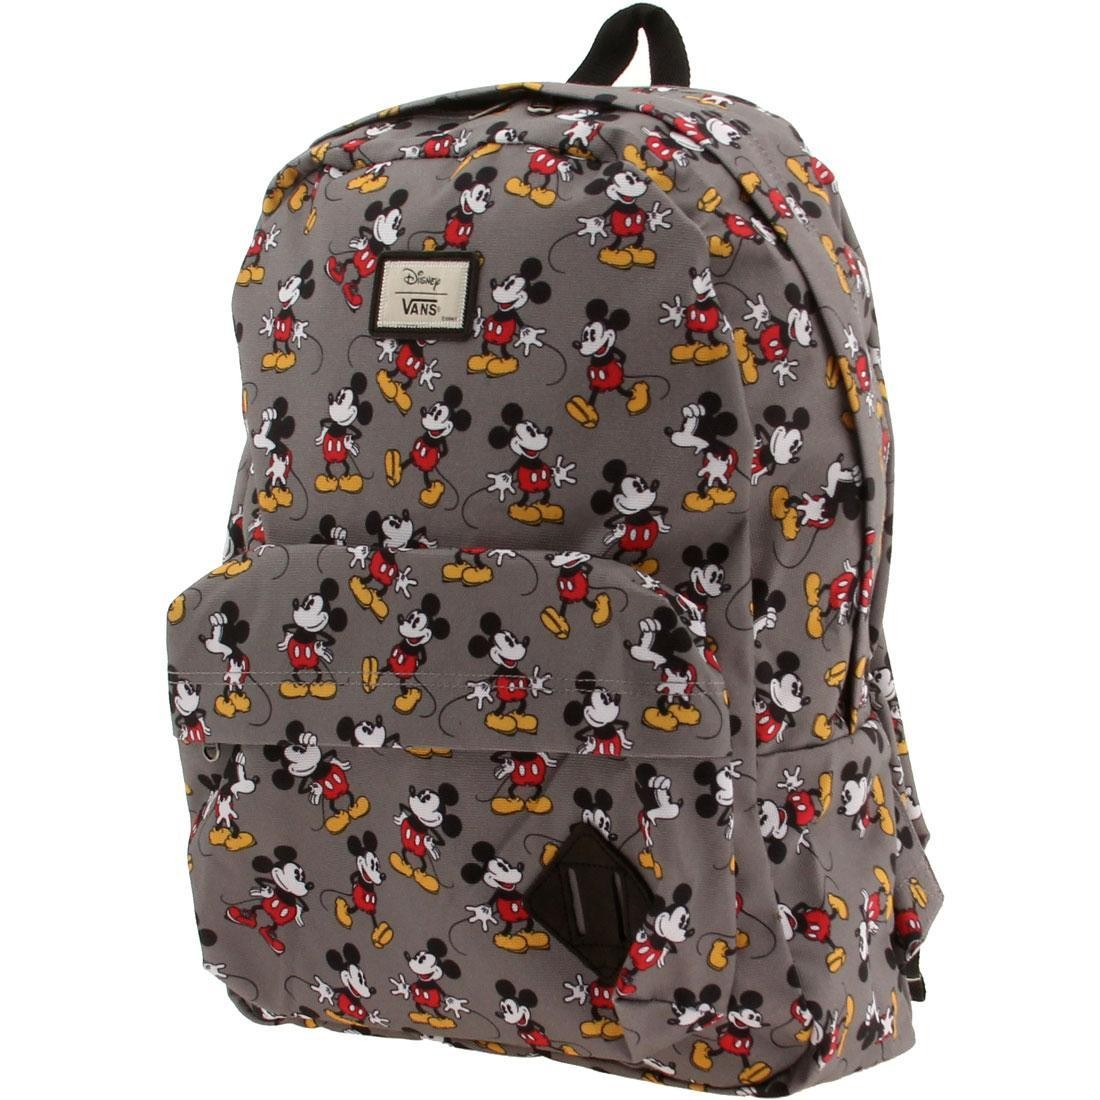 Vans x Disney Old Skool II Backpack - Mickey Mouse gray 9963ca99ee4e5